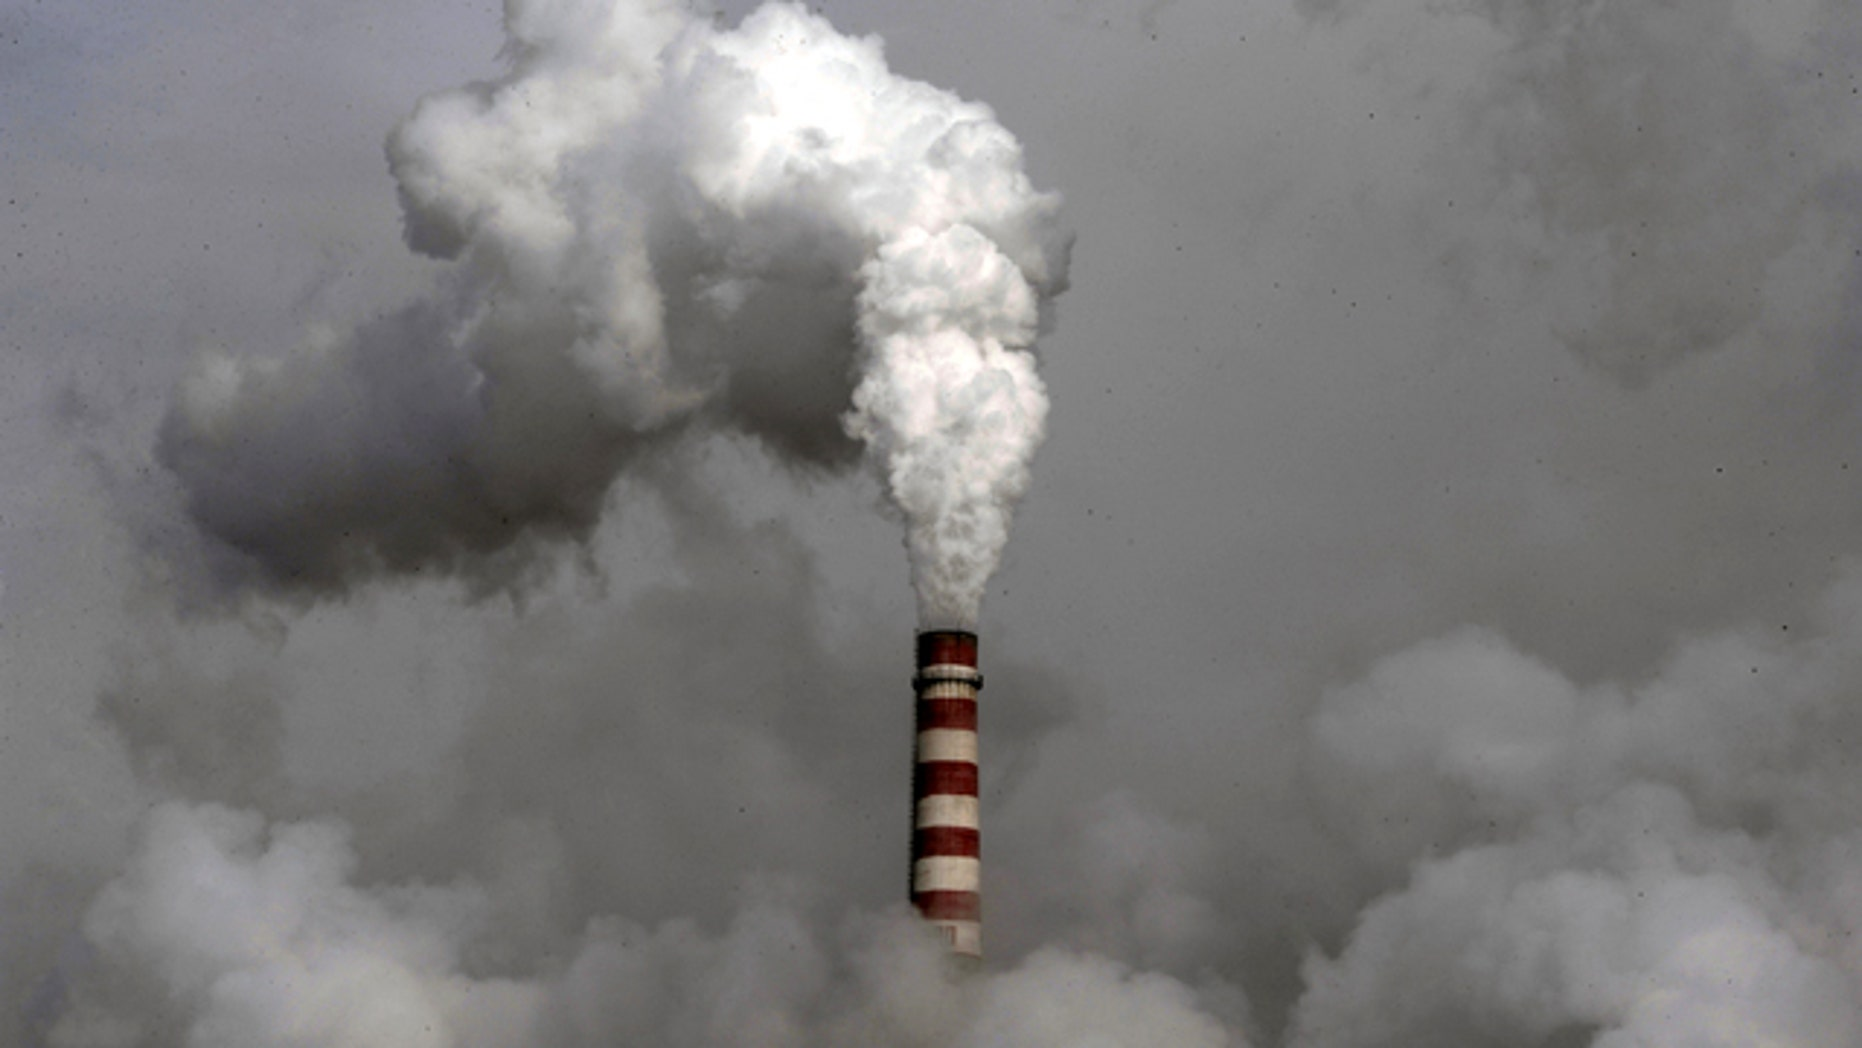 Smoke billows from the chimney of the cooling towers of a coal-fired power plant in Dadong, Shanxi province, China. Two weeks of United Nations climate talks in Bonn came up with a sketchy new draft for a deal to halt global warming, but some nations immediately raised concerns and observers said Friday, June 11, 2010, there is little substantial progress.